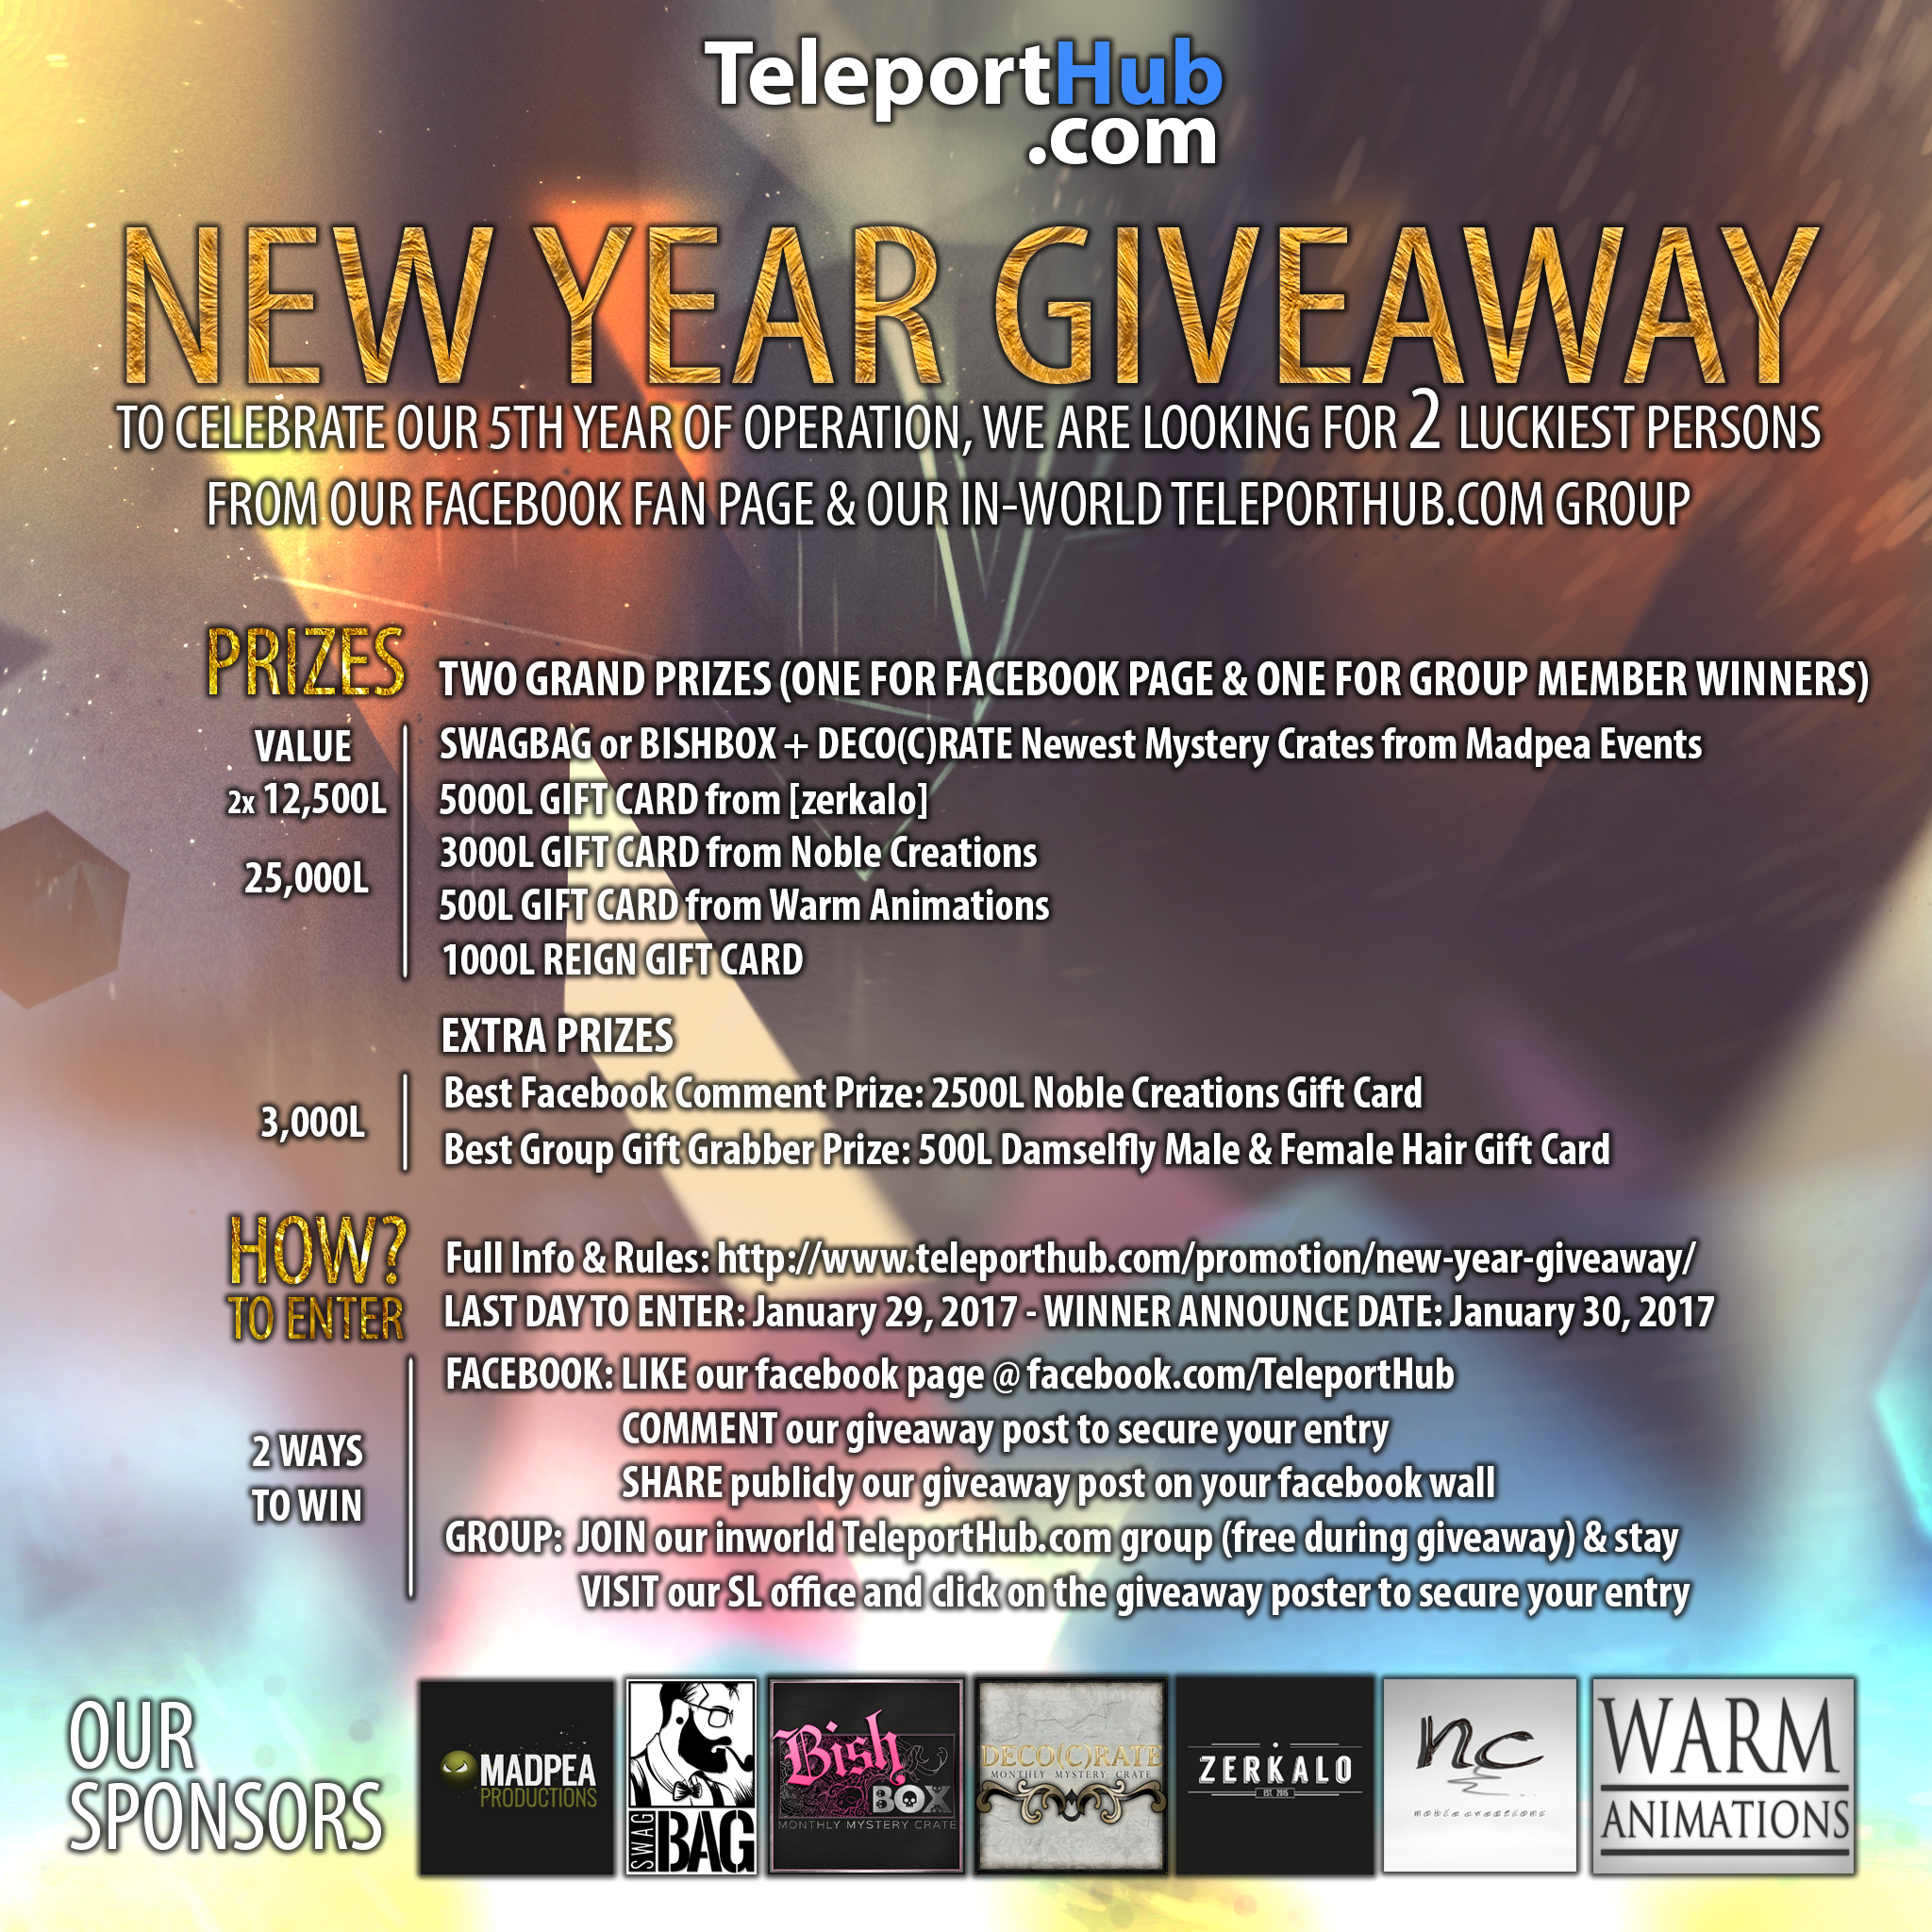 TeleportHub.com's New Year Giveaway